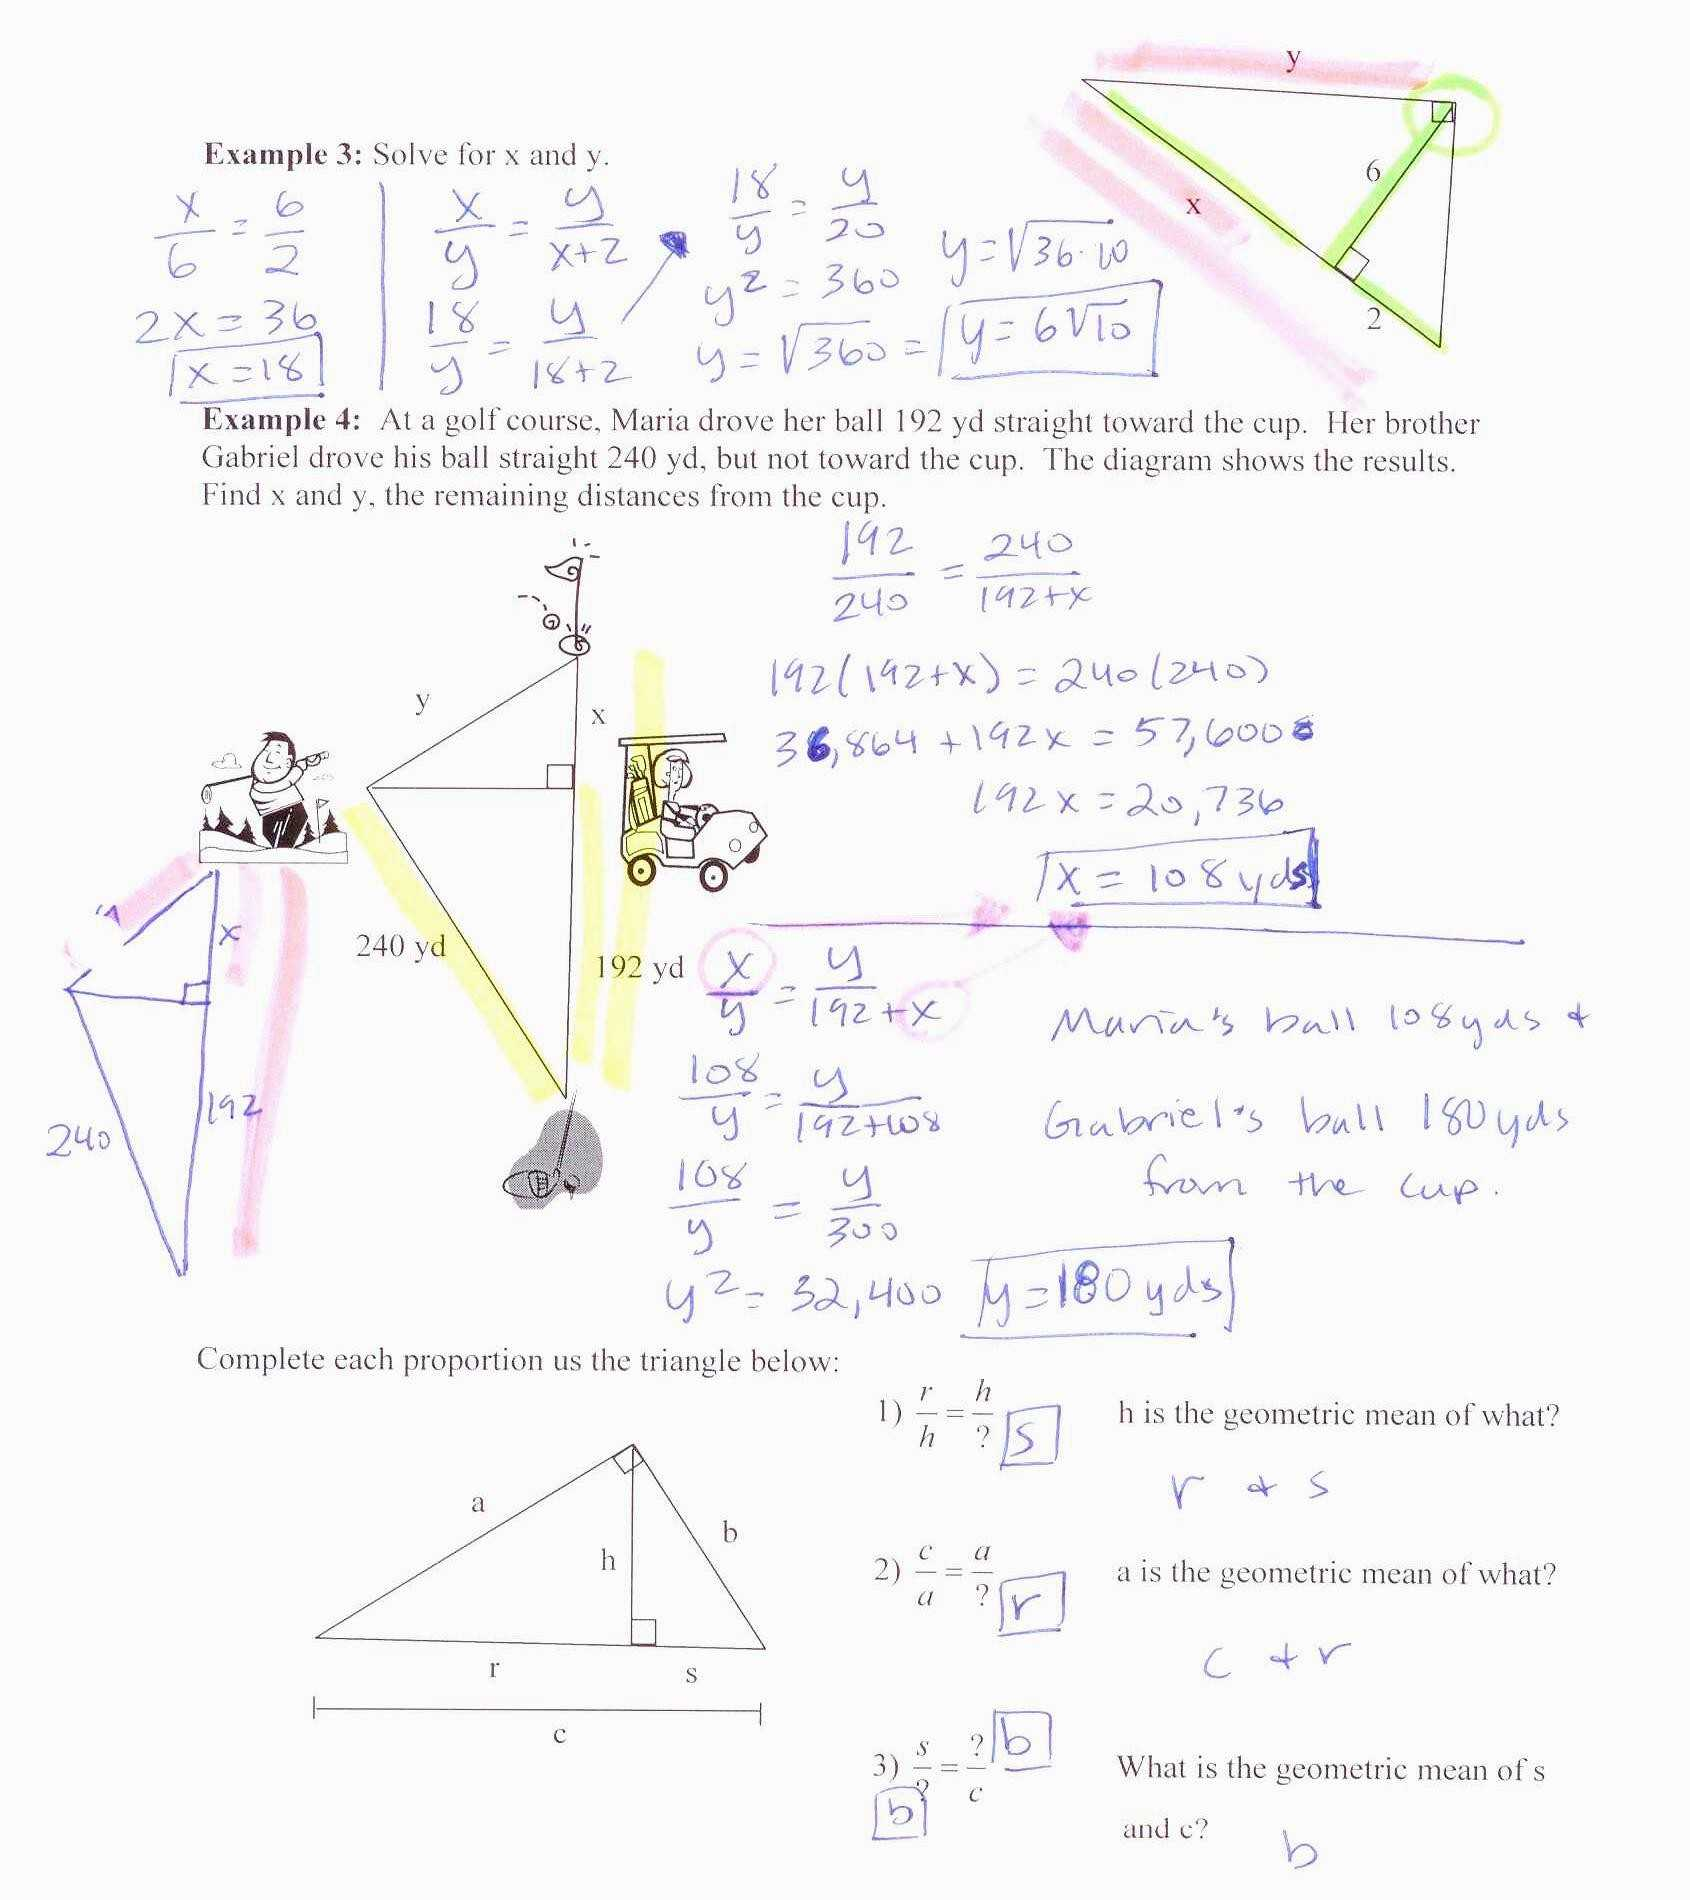 Special Right Triangles Worksheet Answer Key with Work or 35 Similar Triangles Worksheet Answers Document Design Ideas